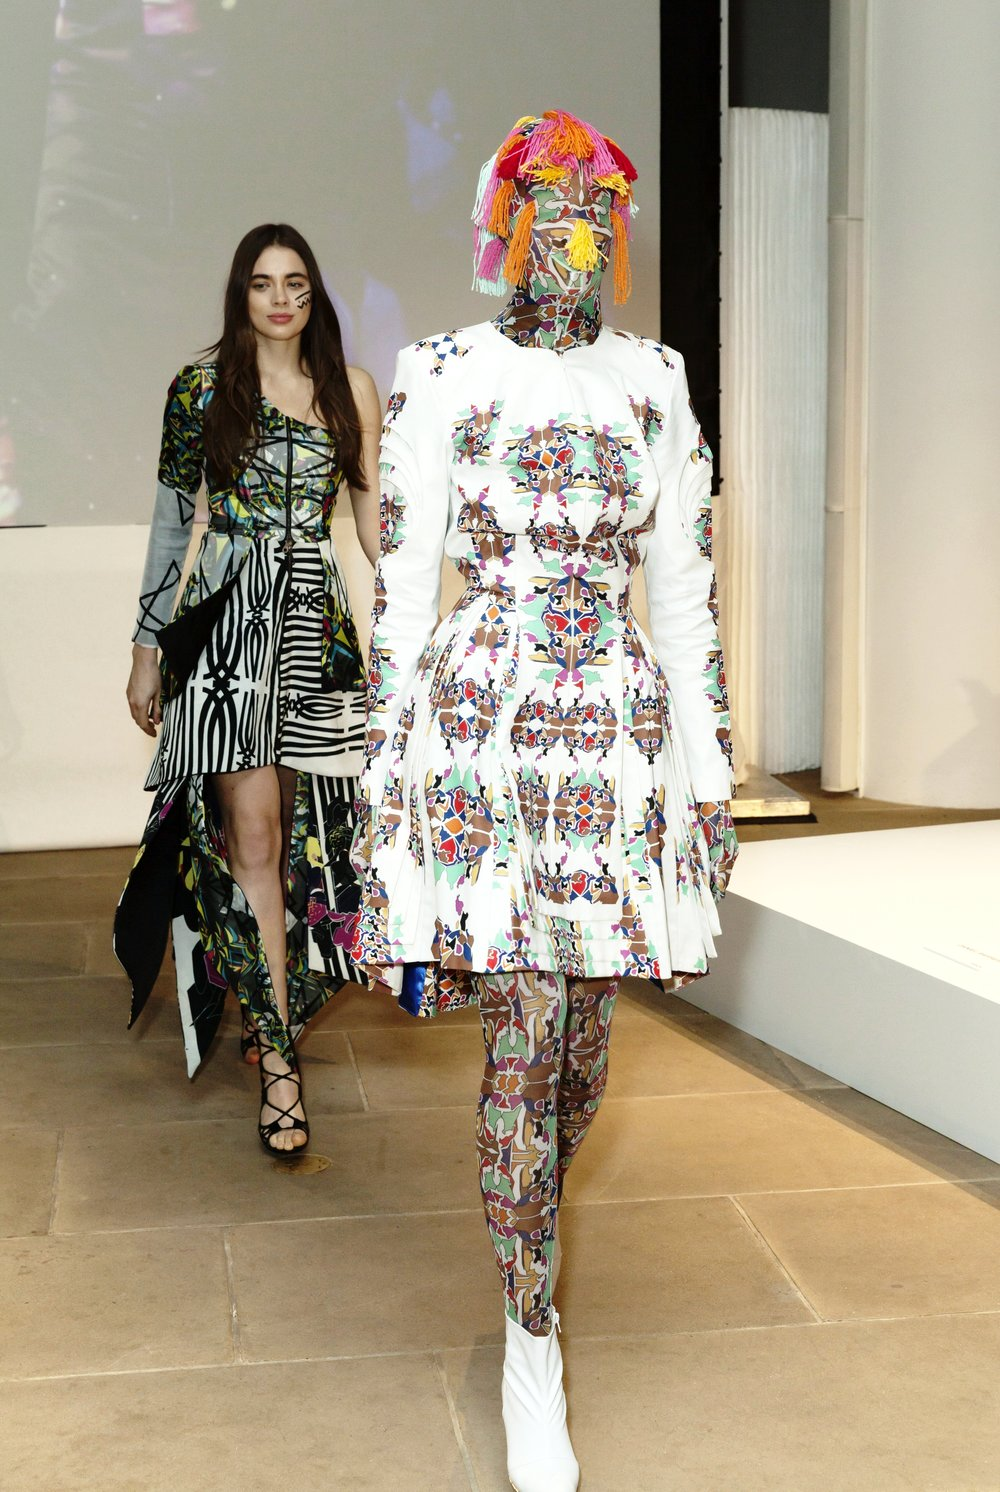 Models walk for Epson Digital Couture project presentation during 2017 fall New York Fashion week.